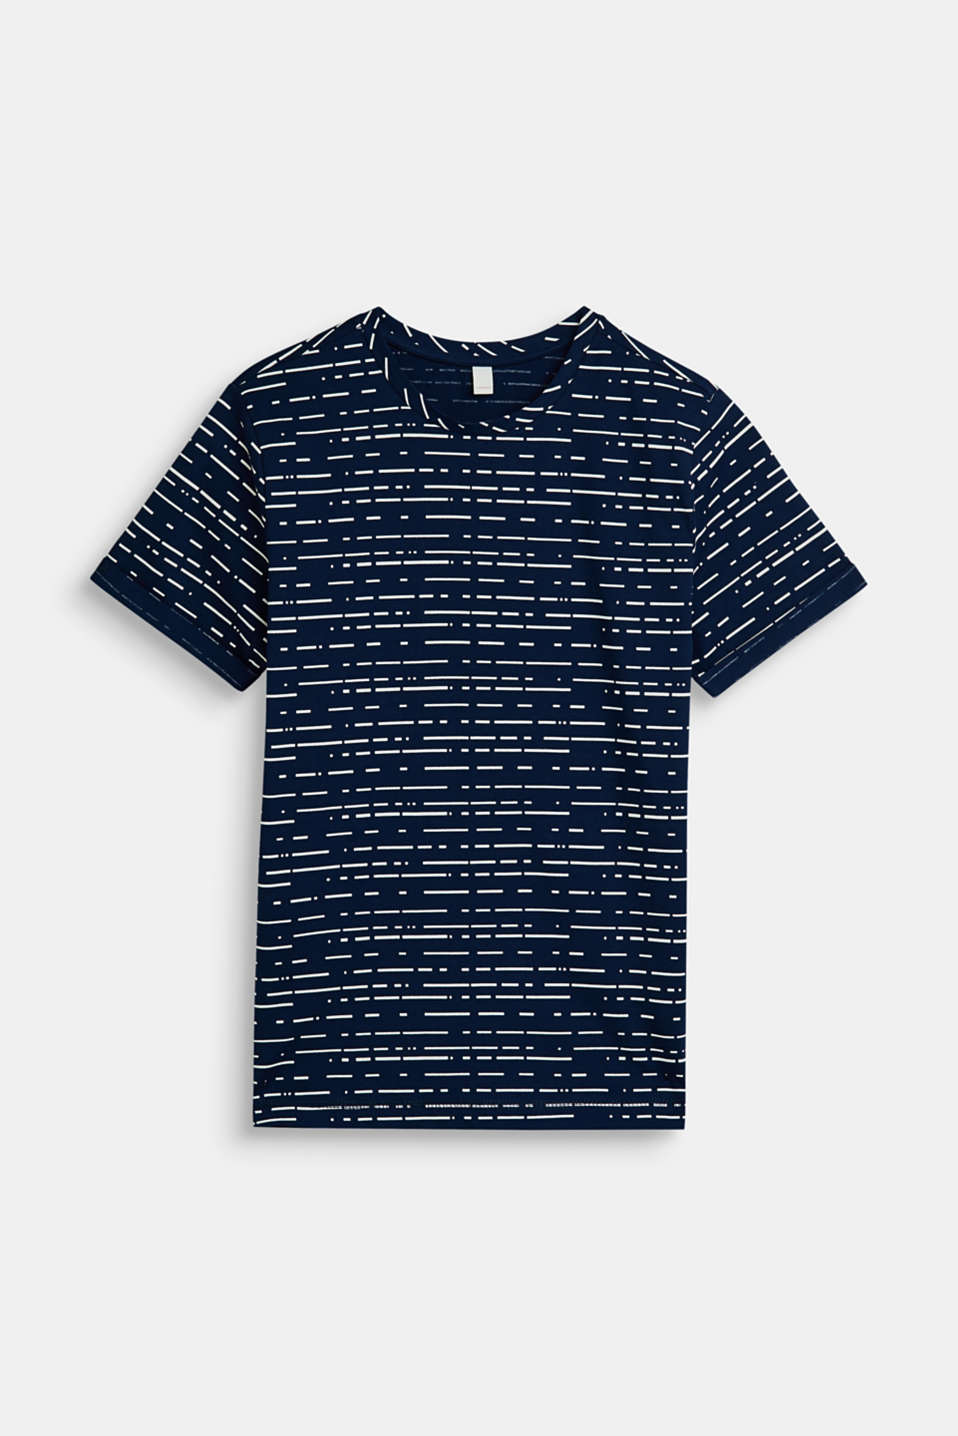 Esprit - T-shirt met print all-over, 100% katoen